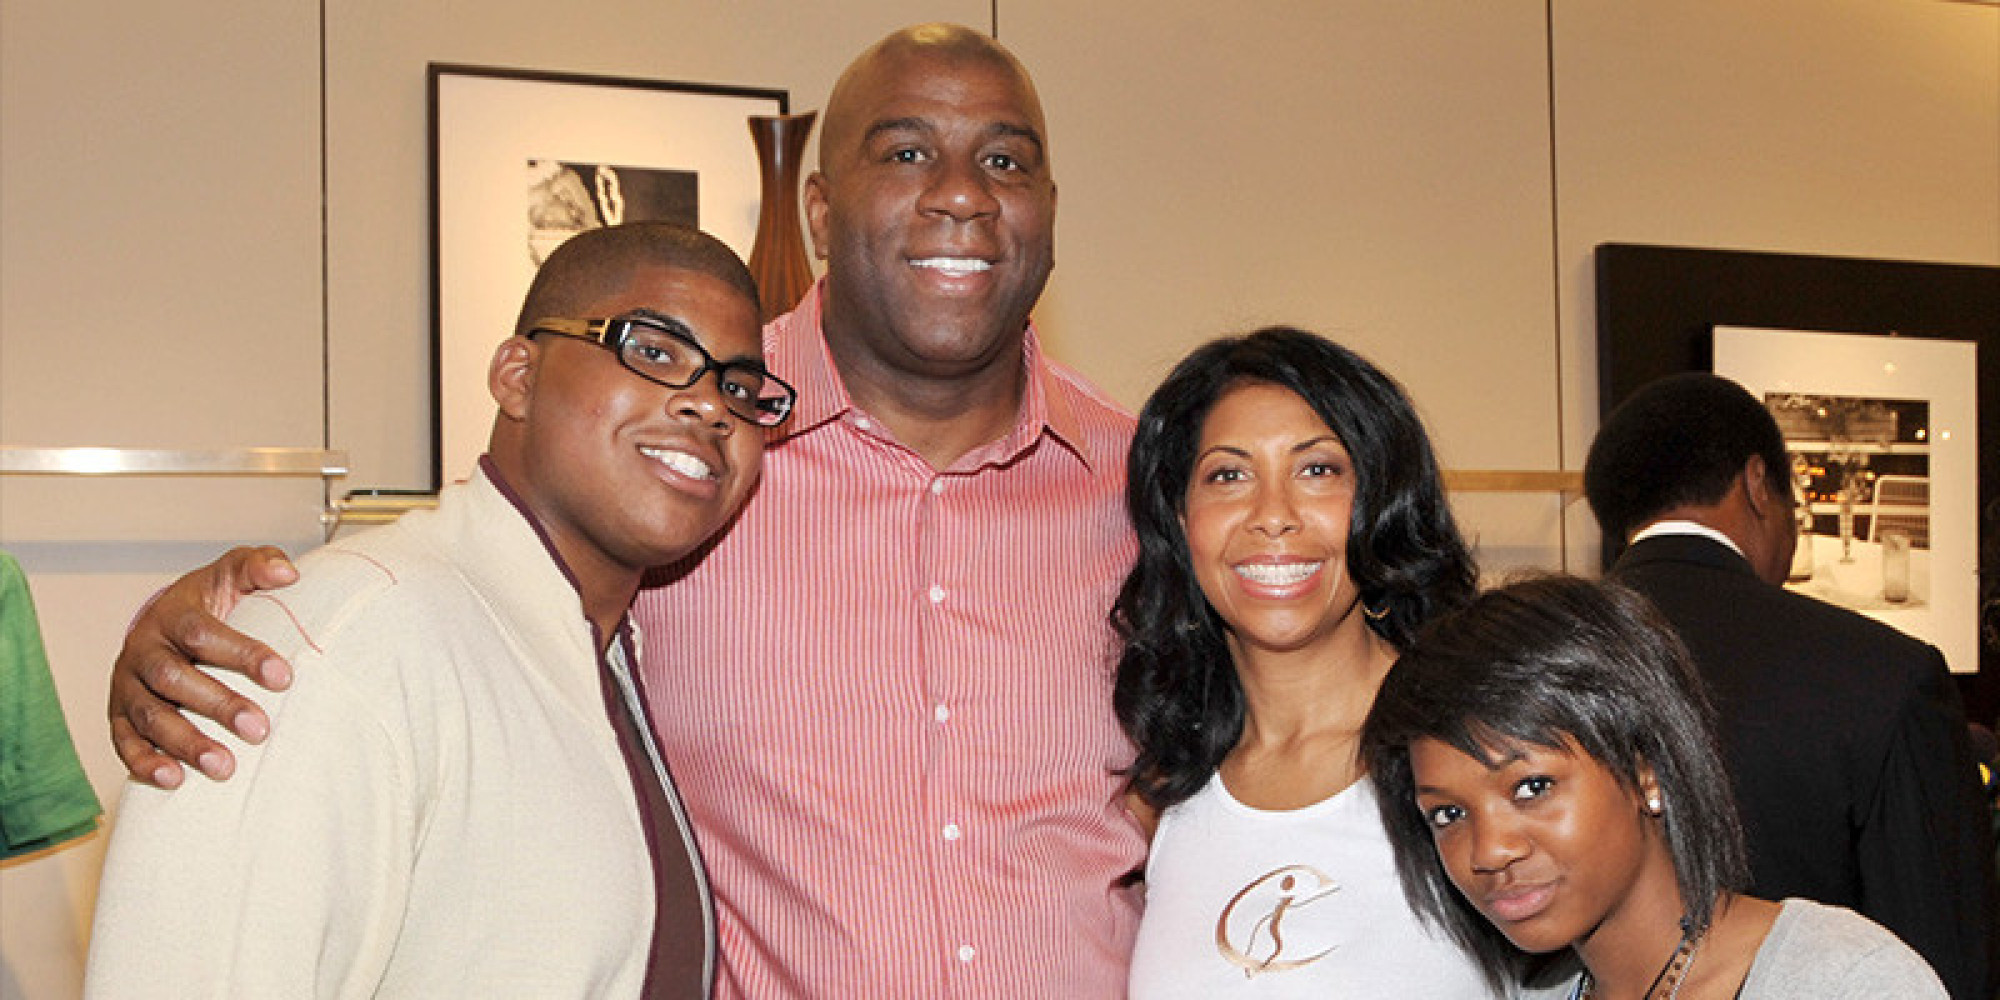 Magic Johnson On Gay Son Ej: 'i Was Just Waiting On Him To Tell Me' (video)   Huffpost